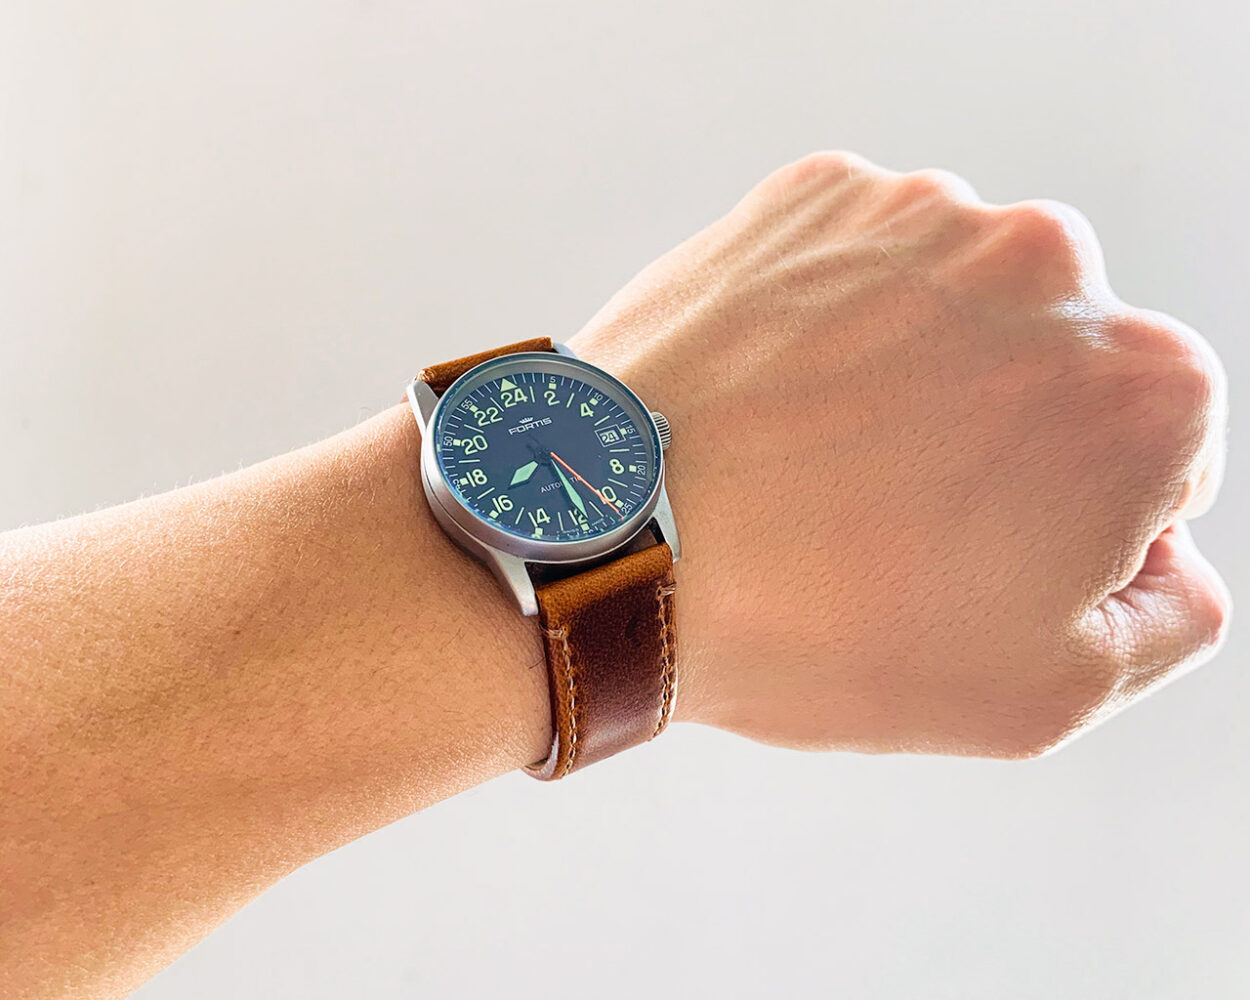 brown leather watch band from Barton on Fortis Flieger 24h